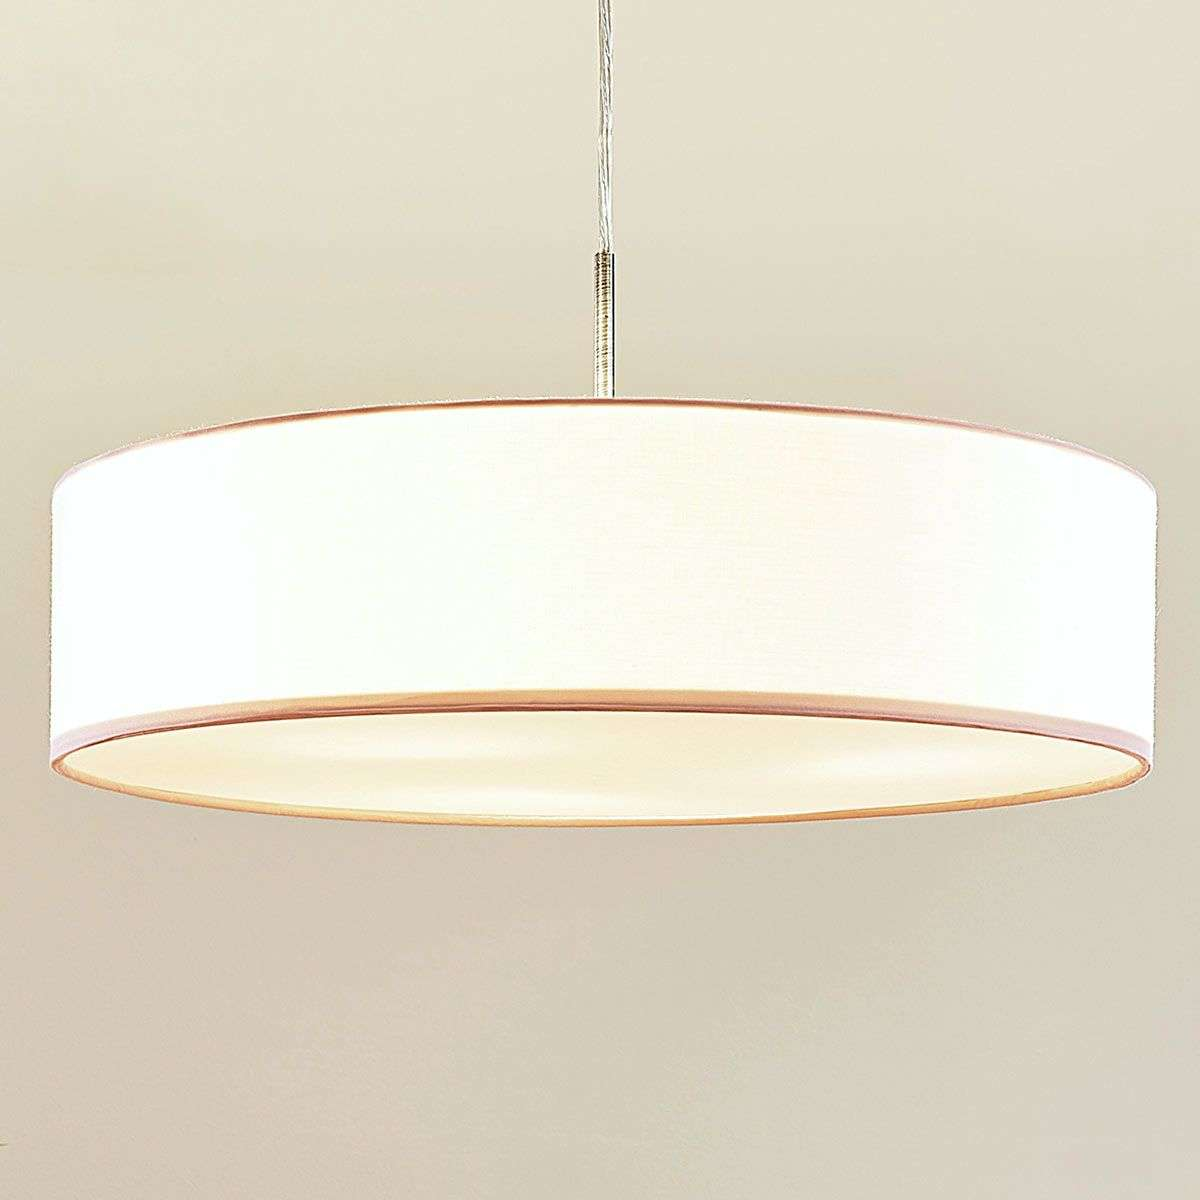 White sebatin led fabric pendant lamp lights white sebatin led fabric pendant lamp 9620321 32 parisarafo Choice Image